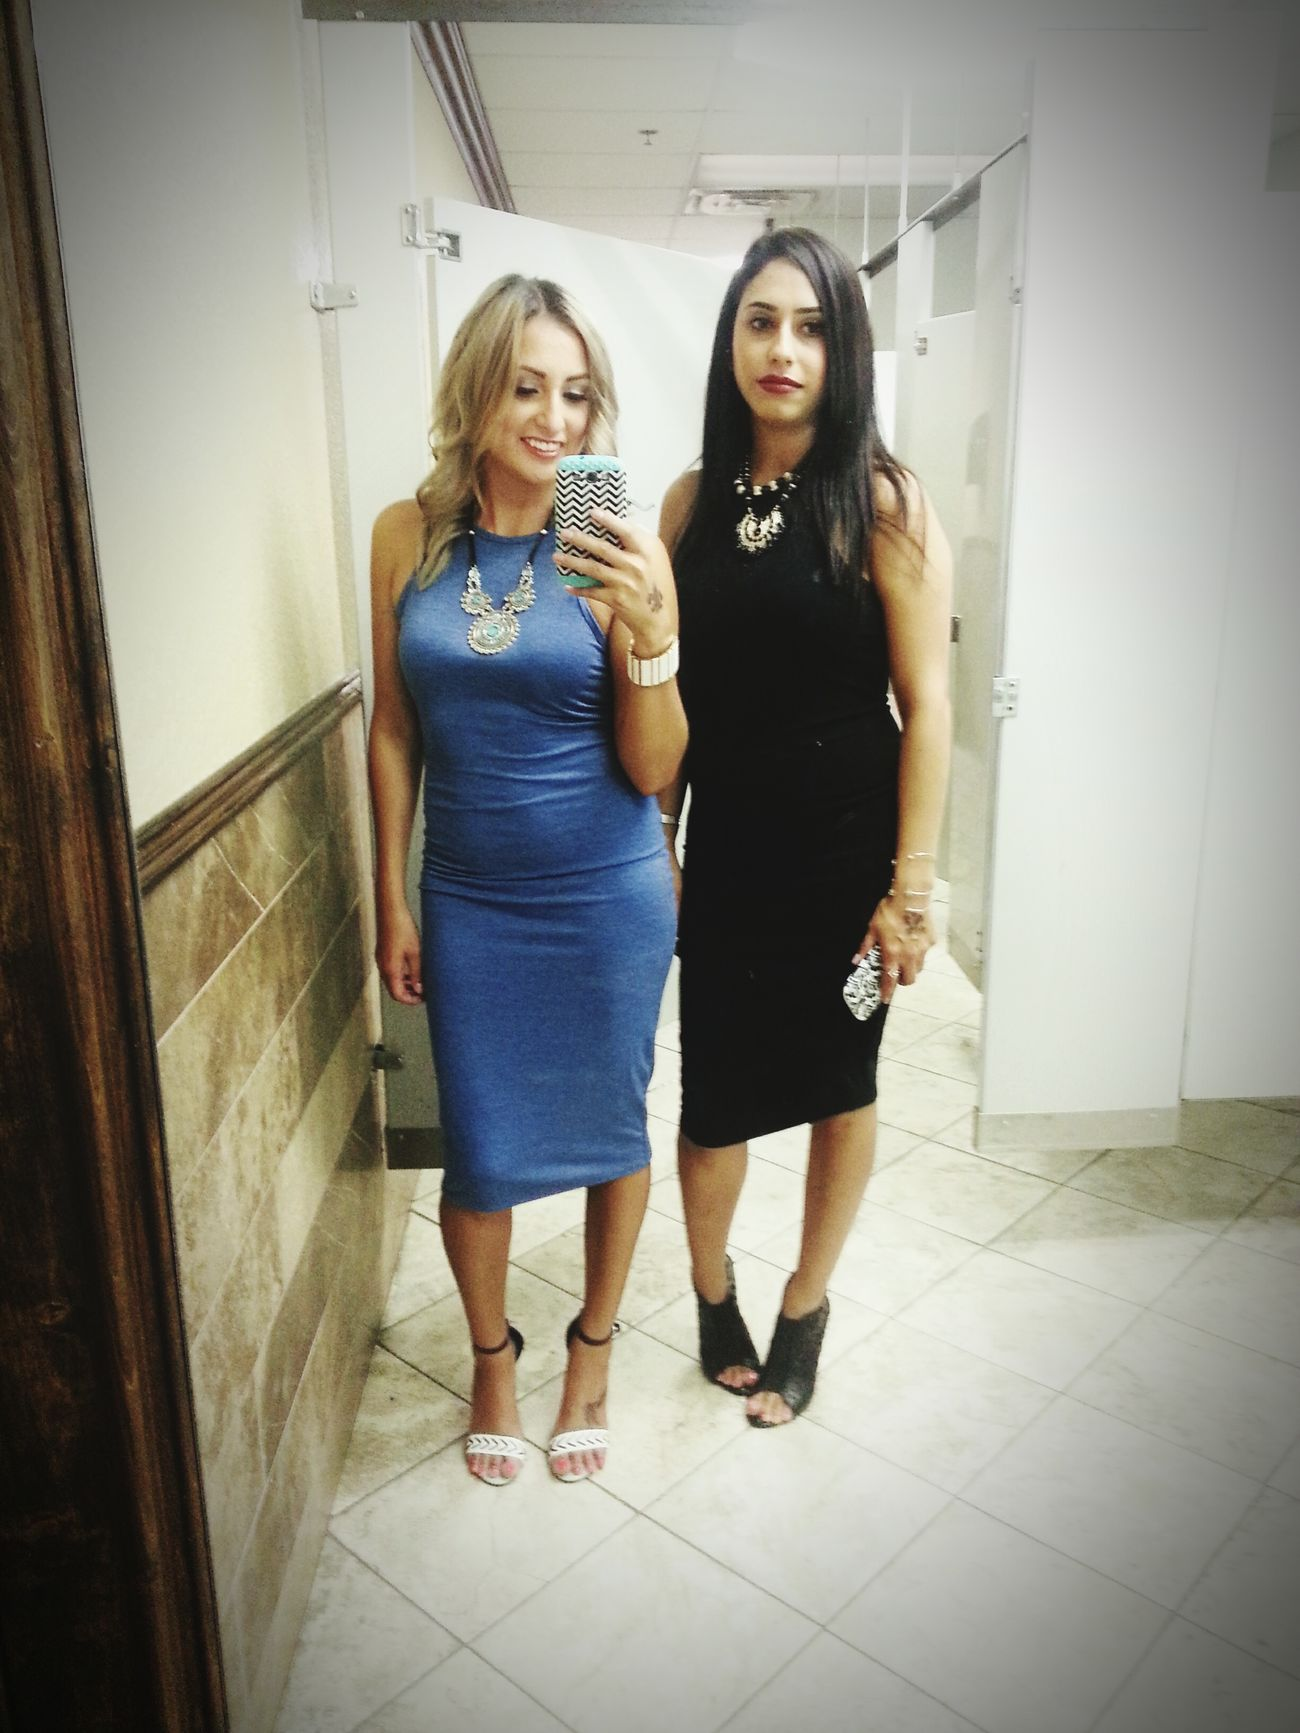 night out with the primos Drinking Bathroomselfie Hotties Latinas SaturdayNightOut Club Dancing Rumbiando